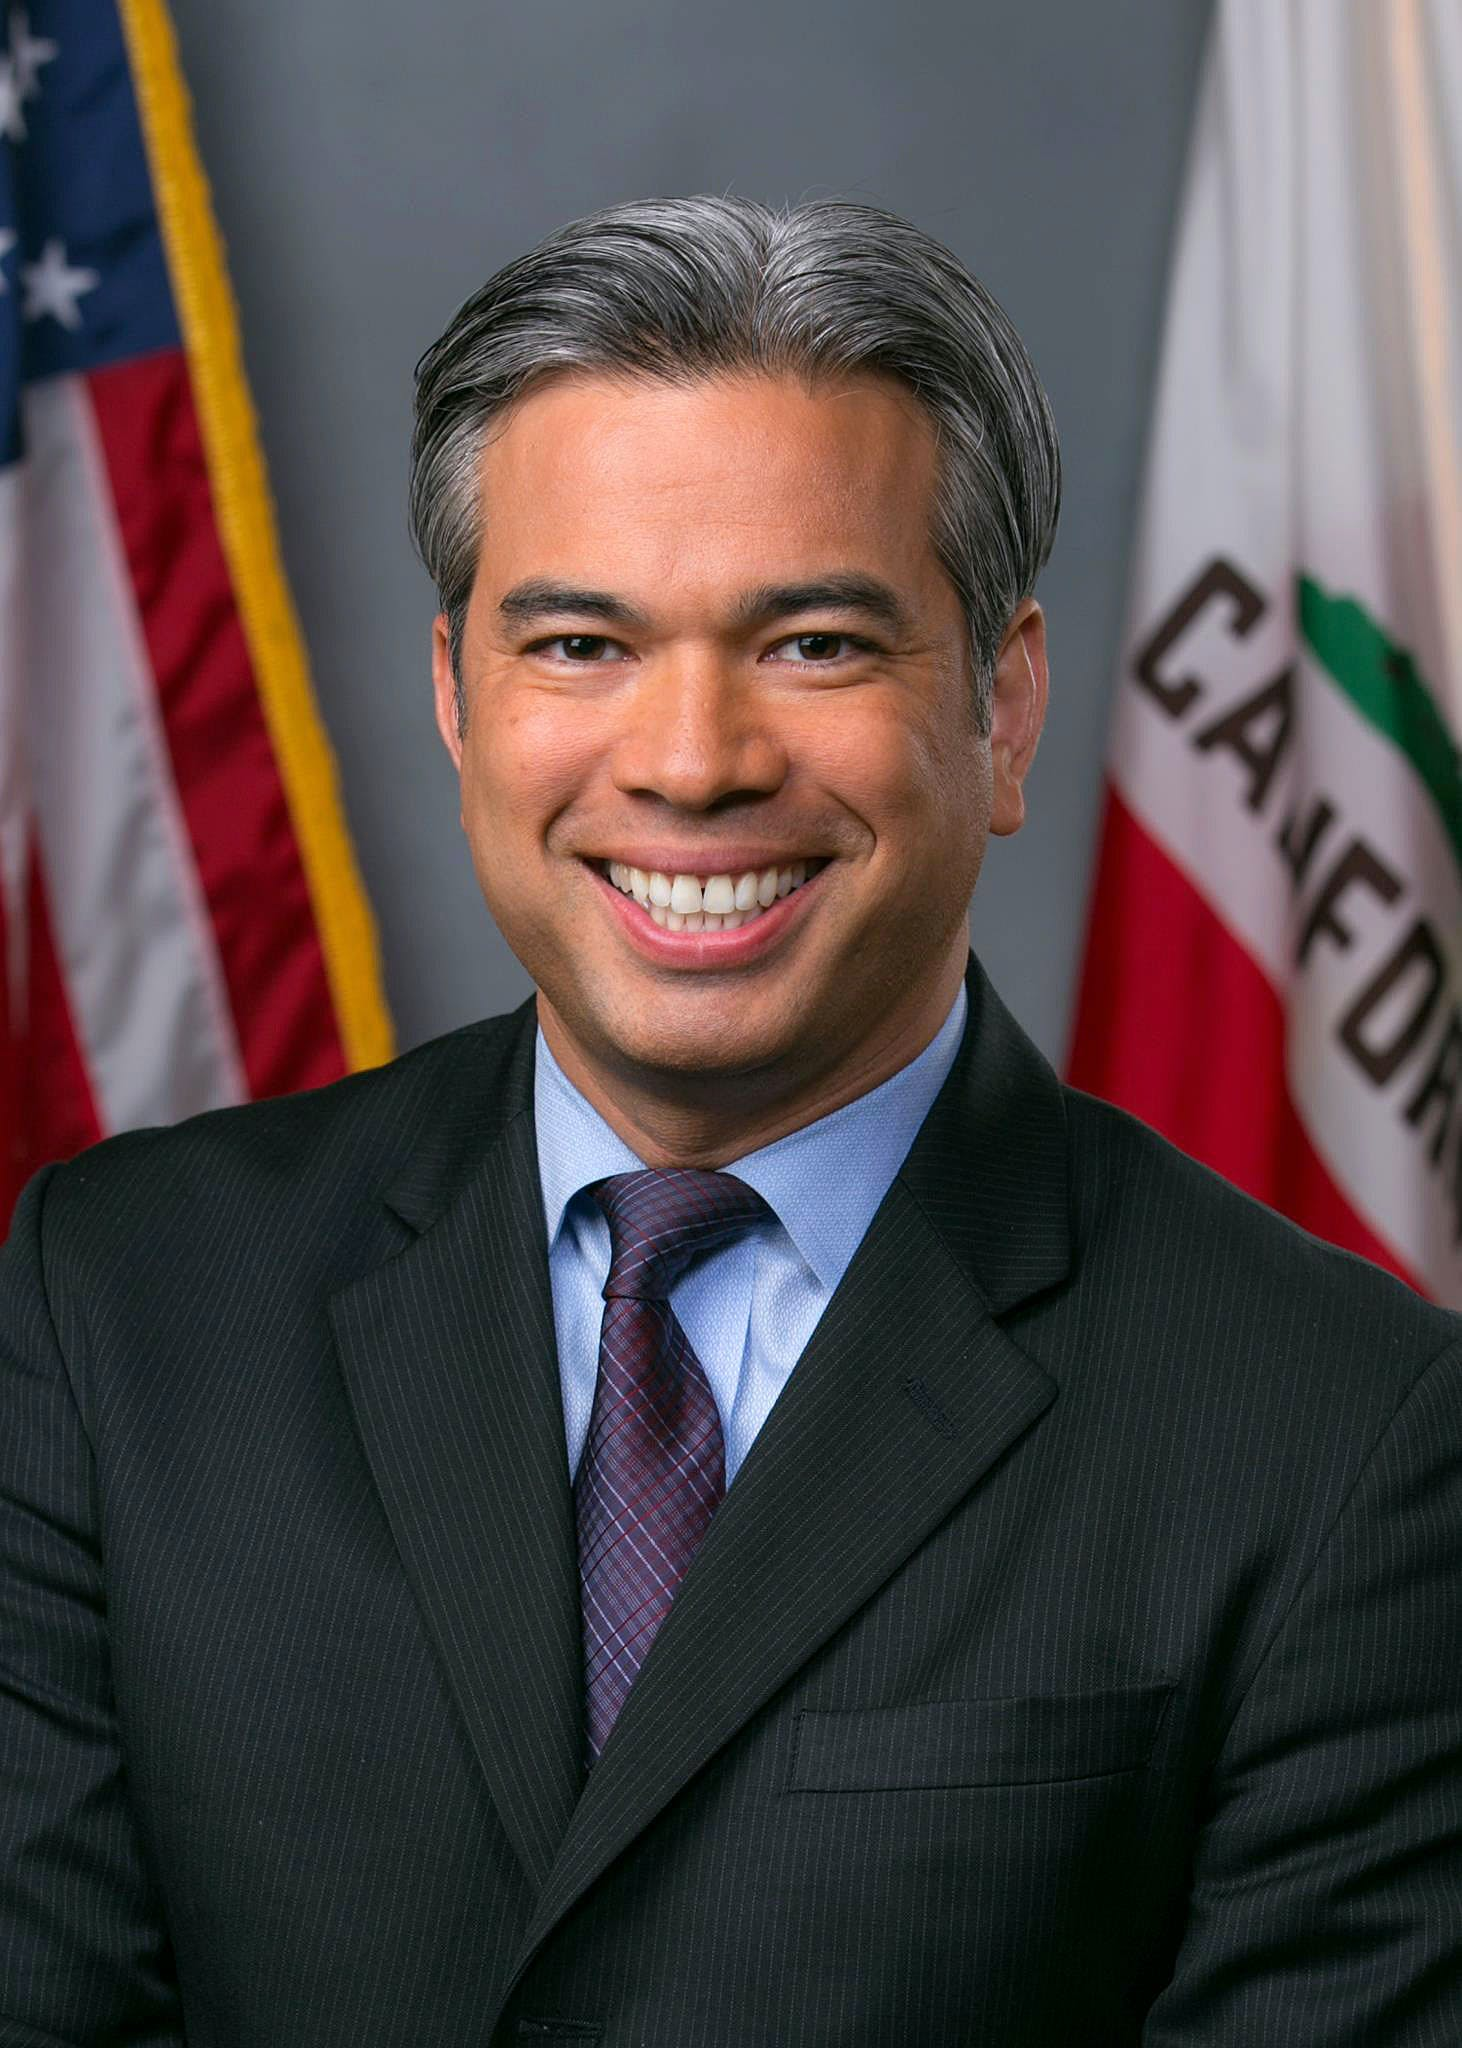 Assemblyman Rob Bonta For The First Time, Thailand Seriously Considers Legalizing Medical Marijuana